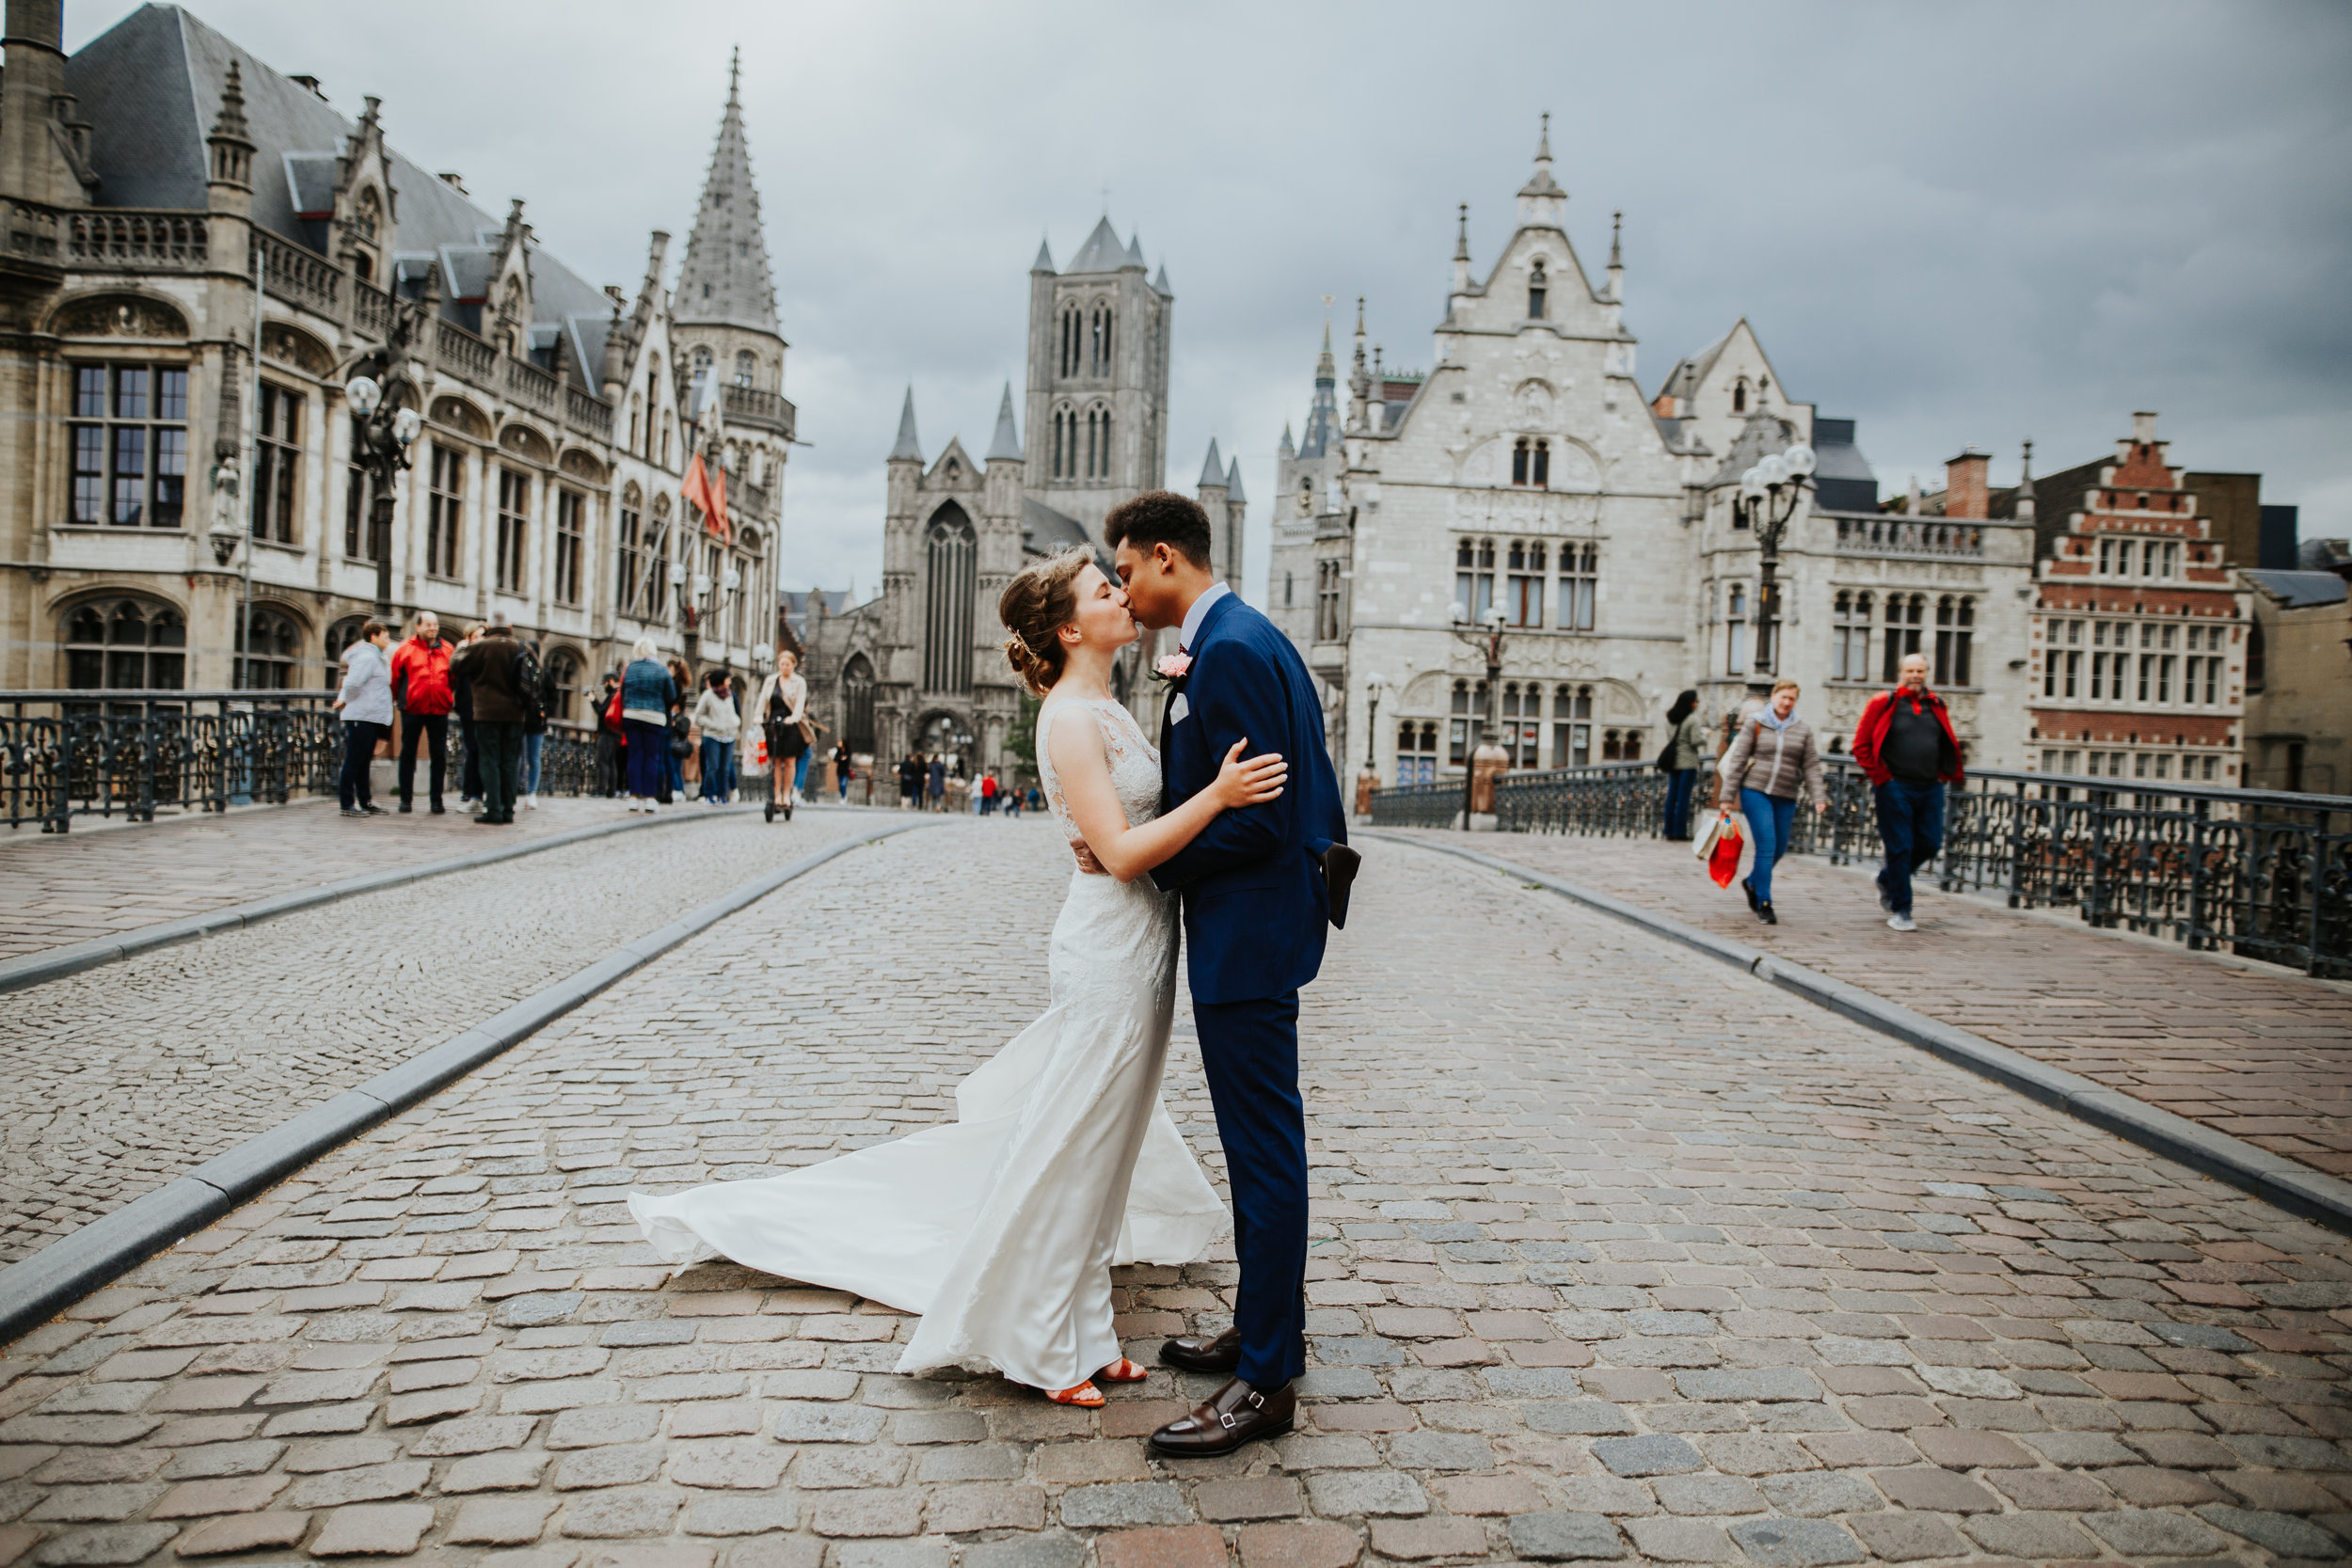 Couple kissing on bridge overlooking the old cityscape of Ghent, Belgium